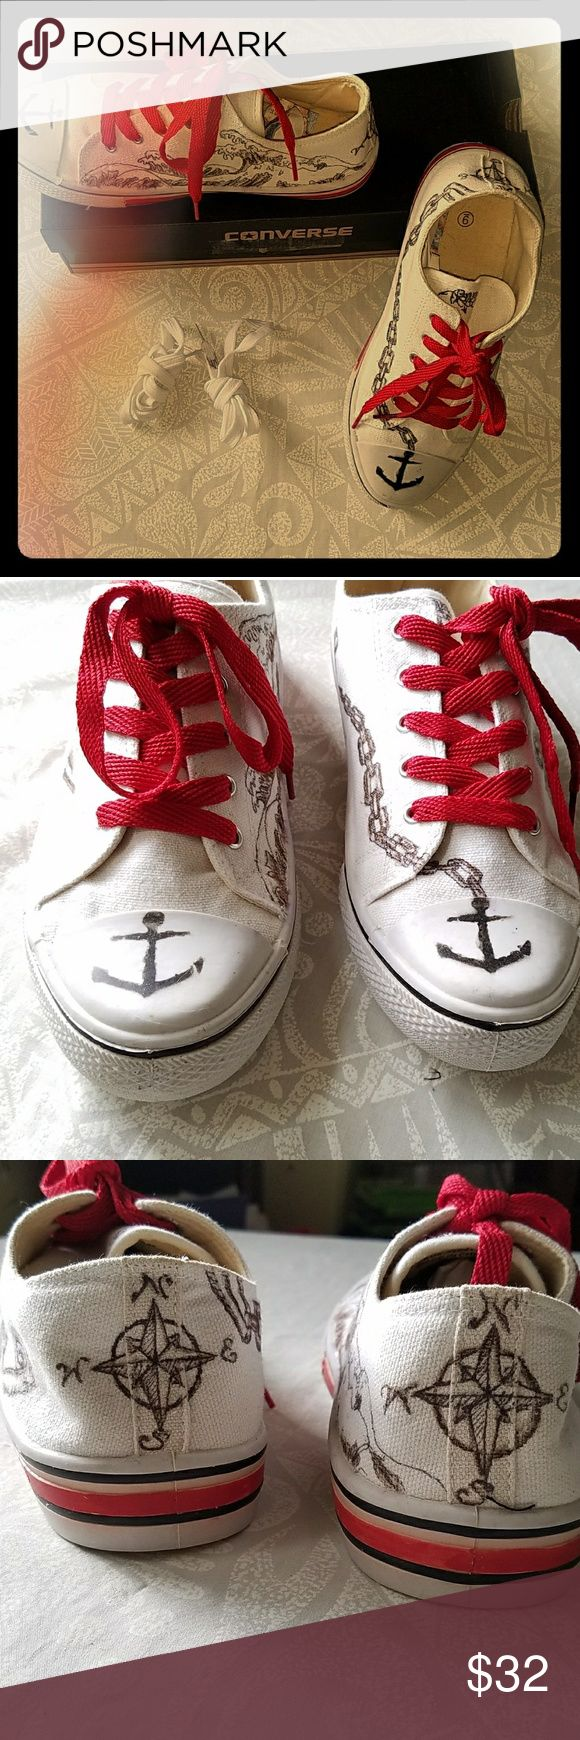 CUSTOM  COURT SHOES SIZE 9 CUSTOM GENTLY IF EVER WORN BASKETBALL SHOES COURT SNEAKERS NAUTICAL SCENE ANCHOR AWESOME OCTOPUS FUN n FUNKY SHIPS IN CONVERSE BOX EXTRA LACES TIME TO GO PLAY!! Shoes Sneakers